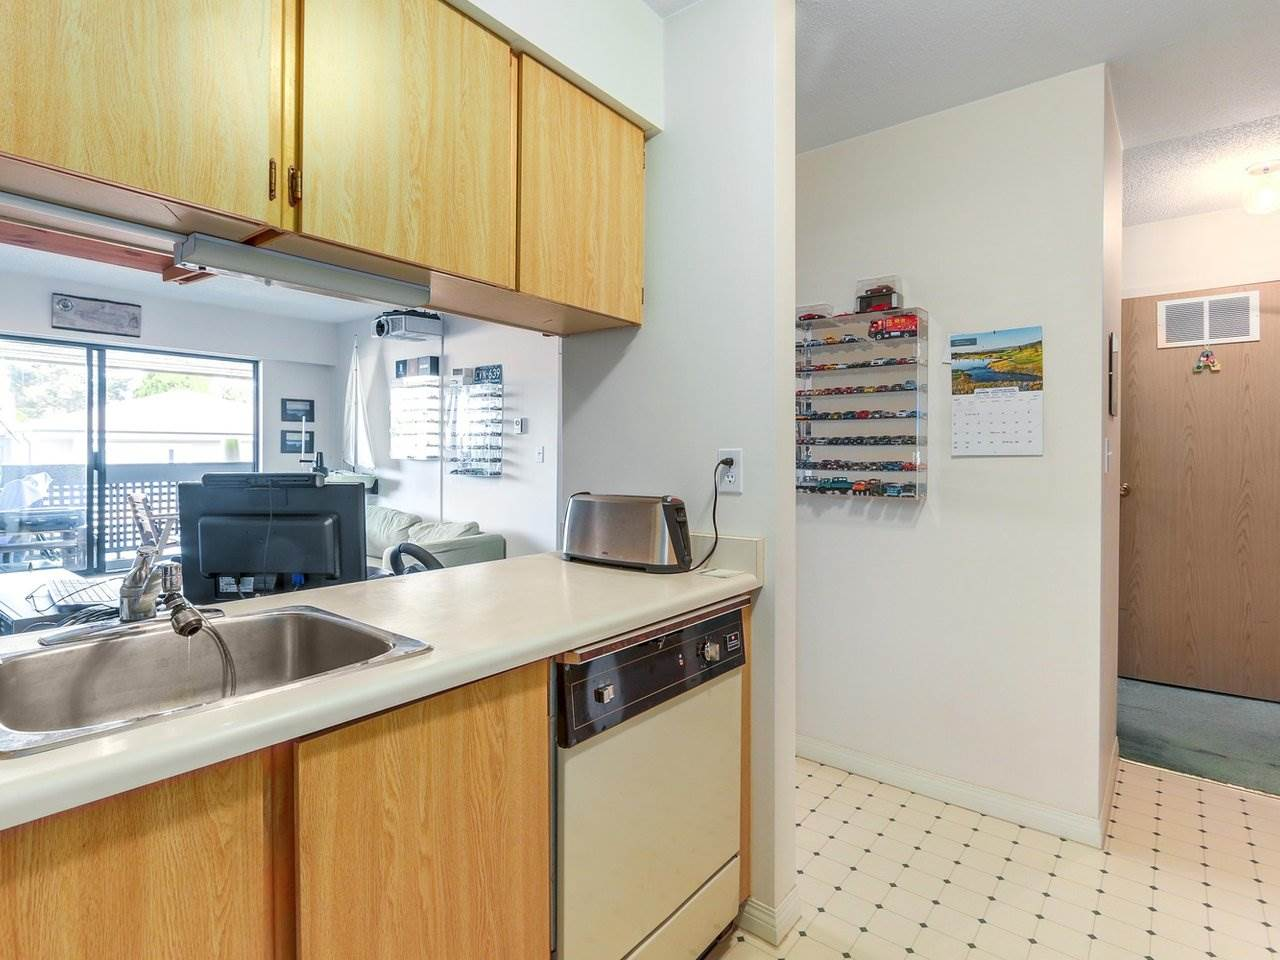 Photo 3: 309 1977 STEPHENS Street in Vancouver: Kitsilano Condo for sale (Vancouver West)  : MLS(r) # R2183869